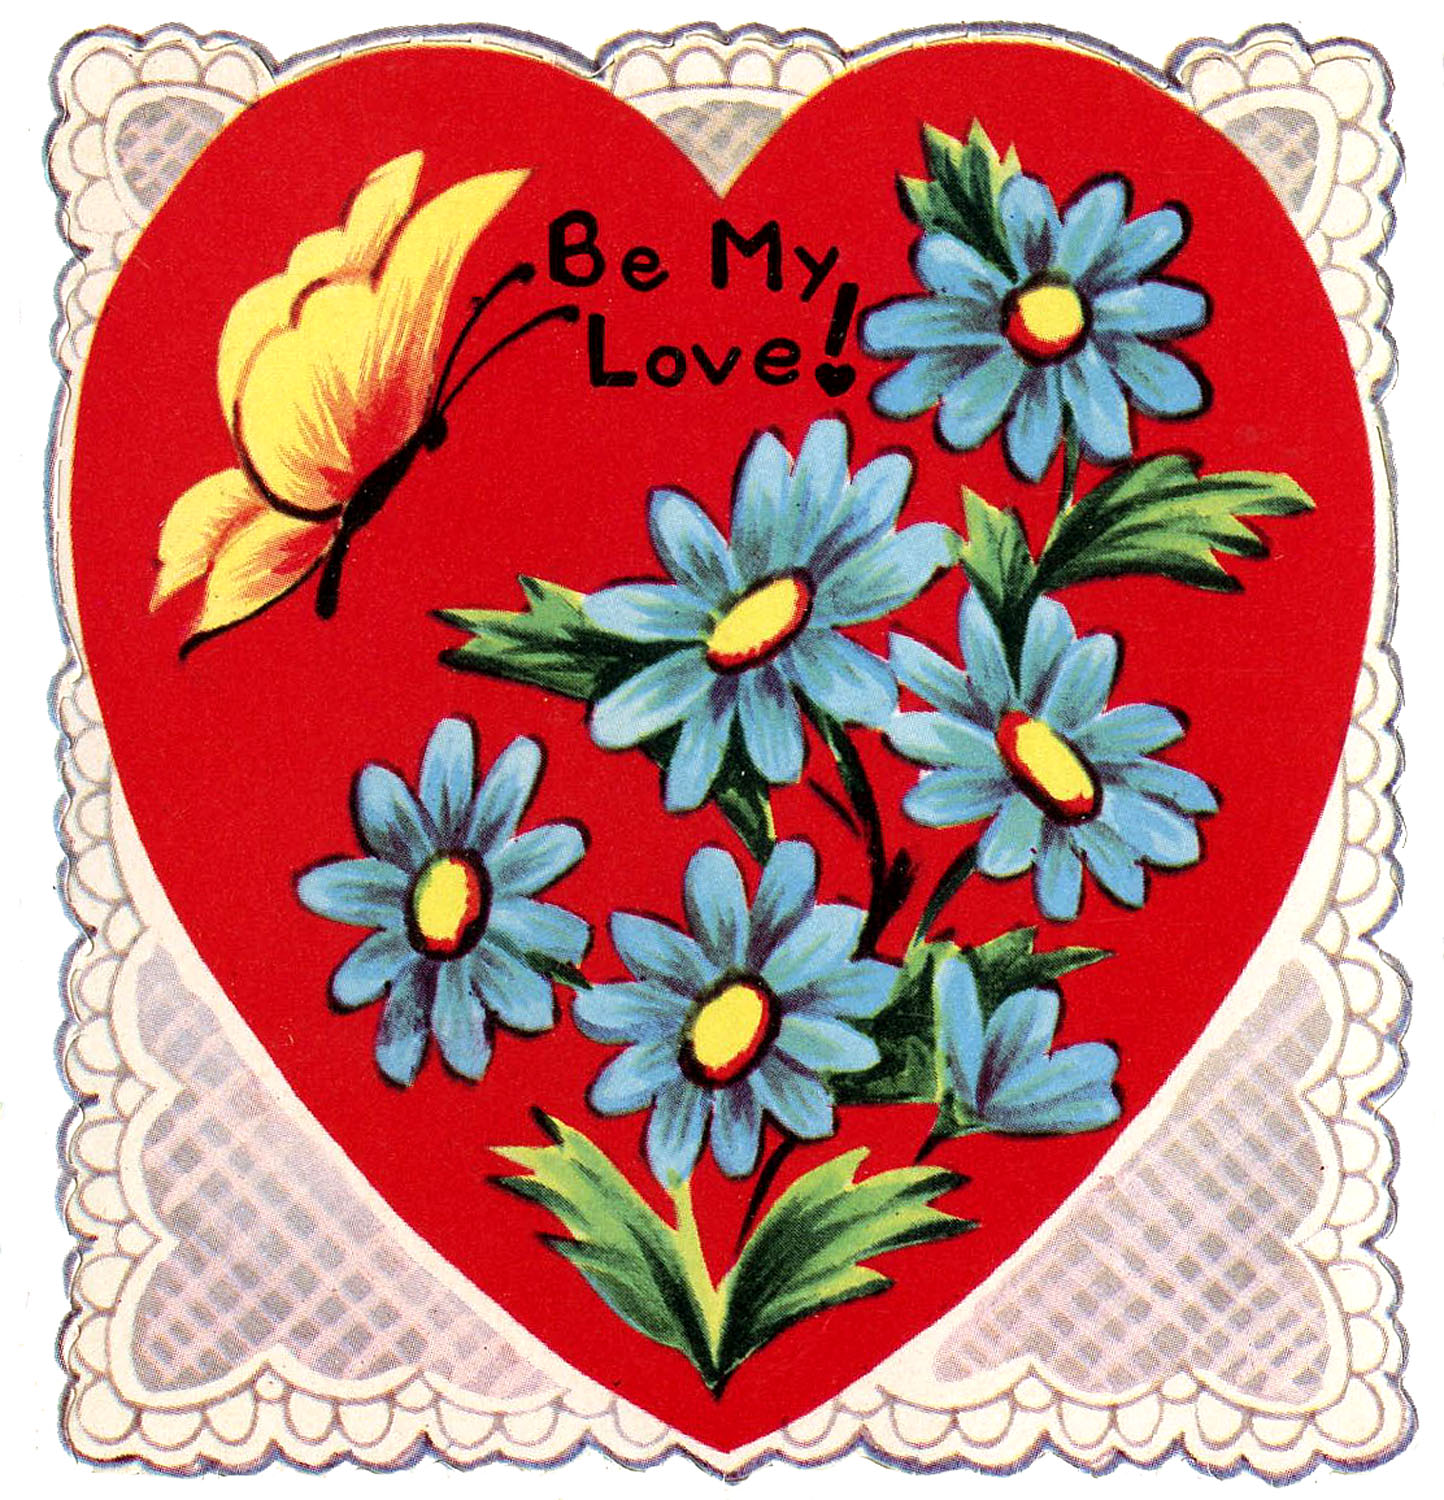 Retro Lace Heart Valentine